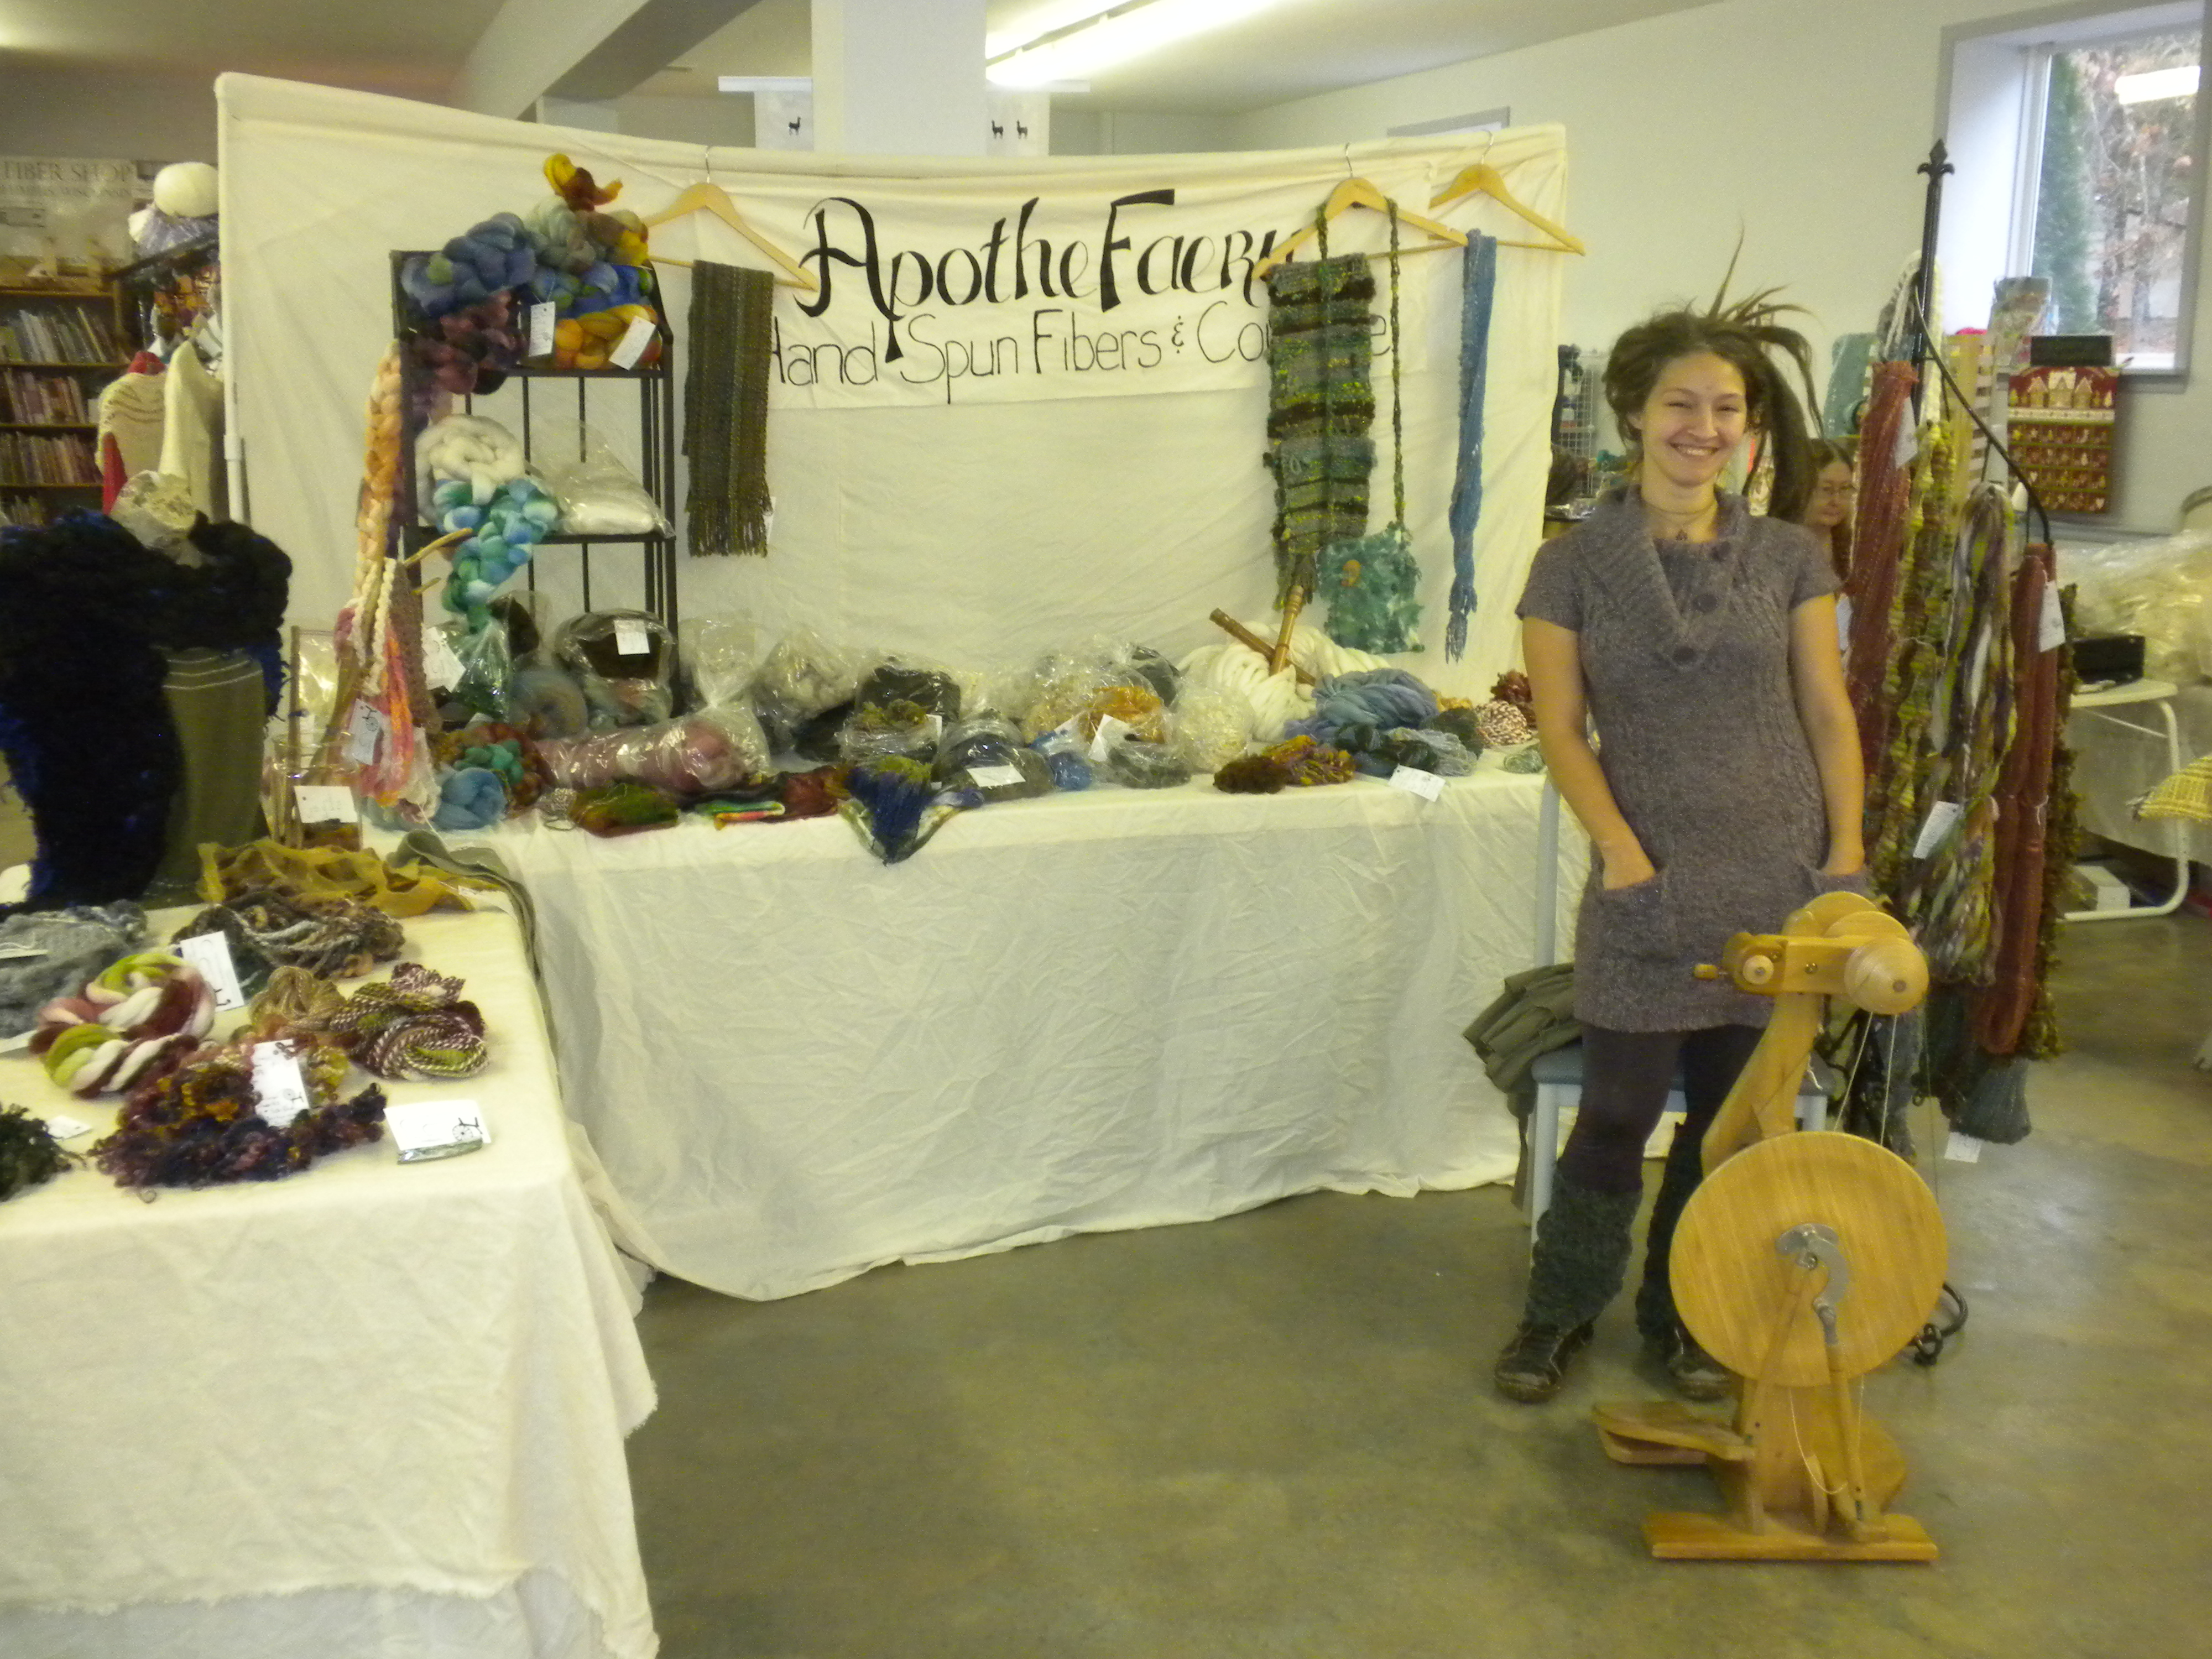 The Apothefaery and her booth.